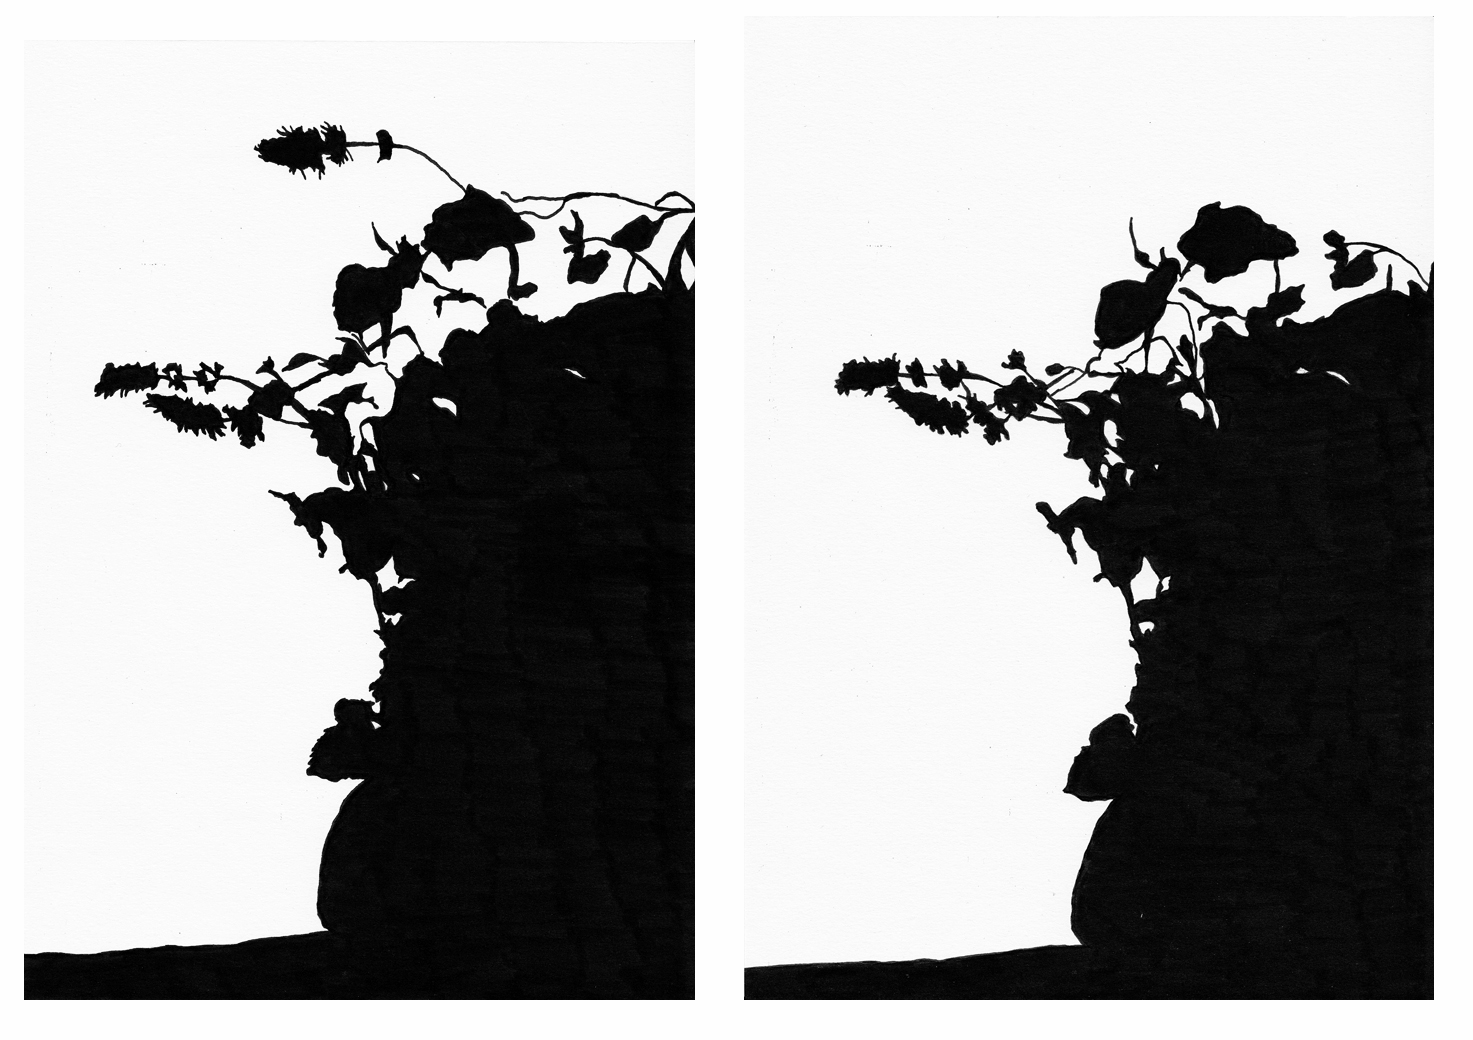 Shadows (Mint) , August 19, left: 7.05am, right: 7.12am, 2012, pencil and charcoal on paper.